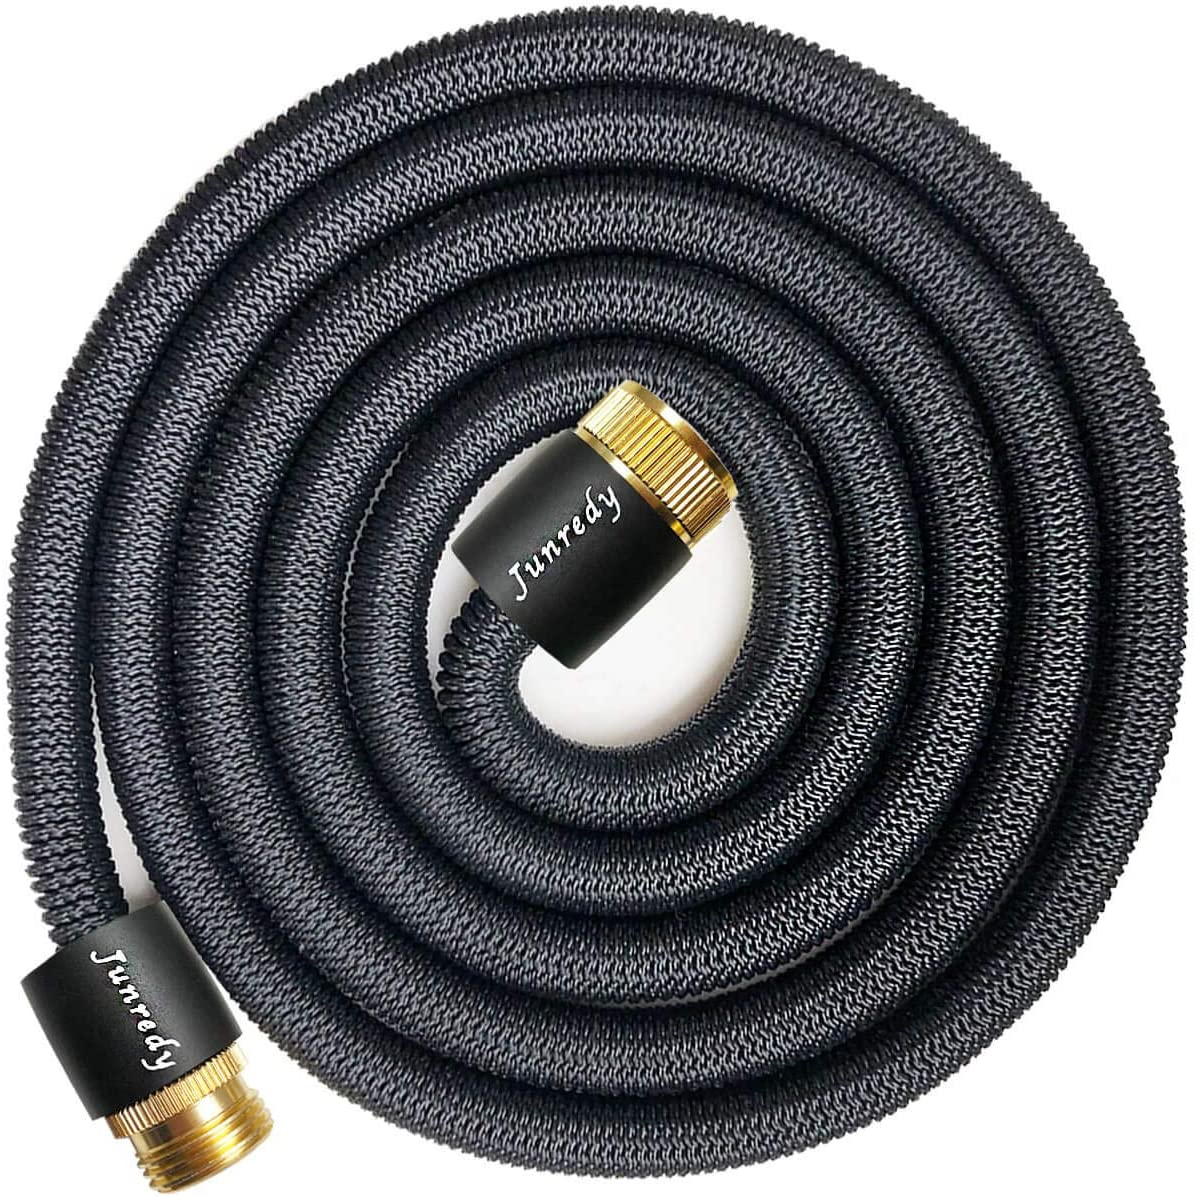 Junredy Water Hose Expandable Garden Hose - Durable 3750D Fabric | 3/4